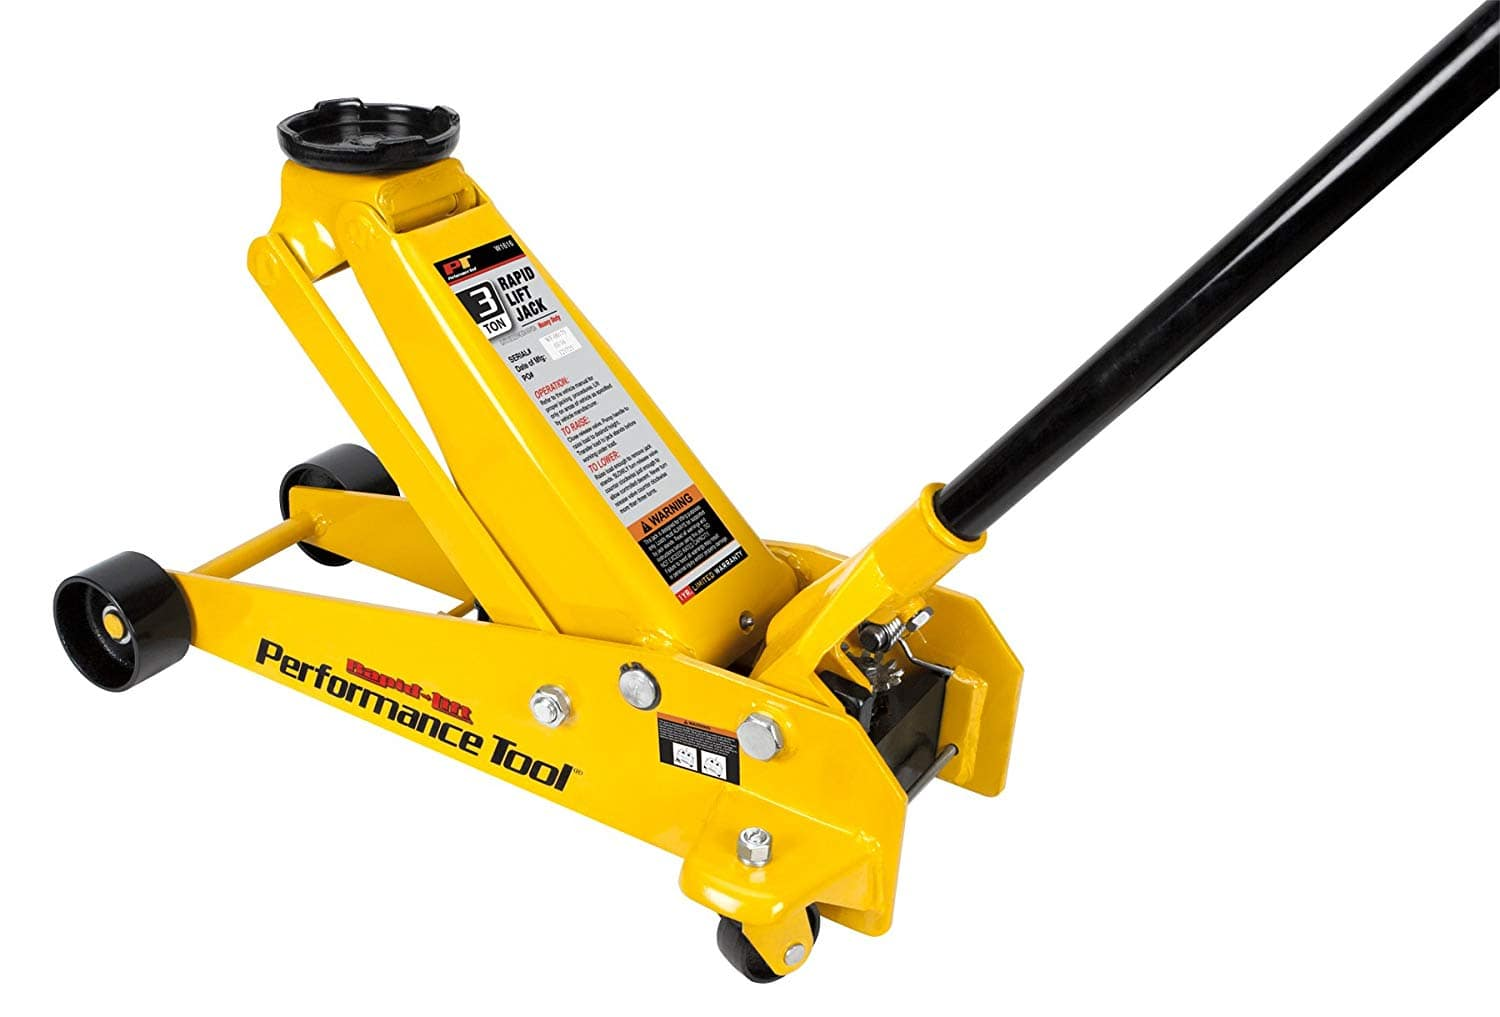 Performance Tool W1616 3 Ton (6,000 lbs.) Capacity Rapid Lift Floor Jack $112.11